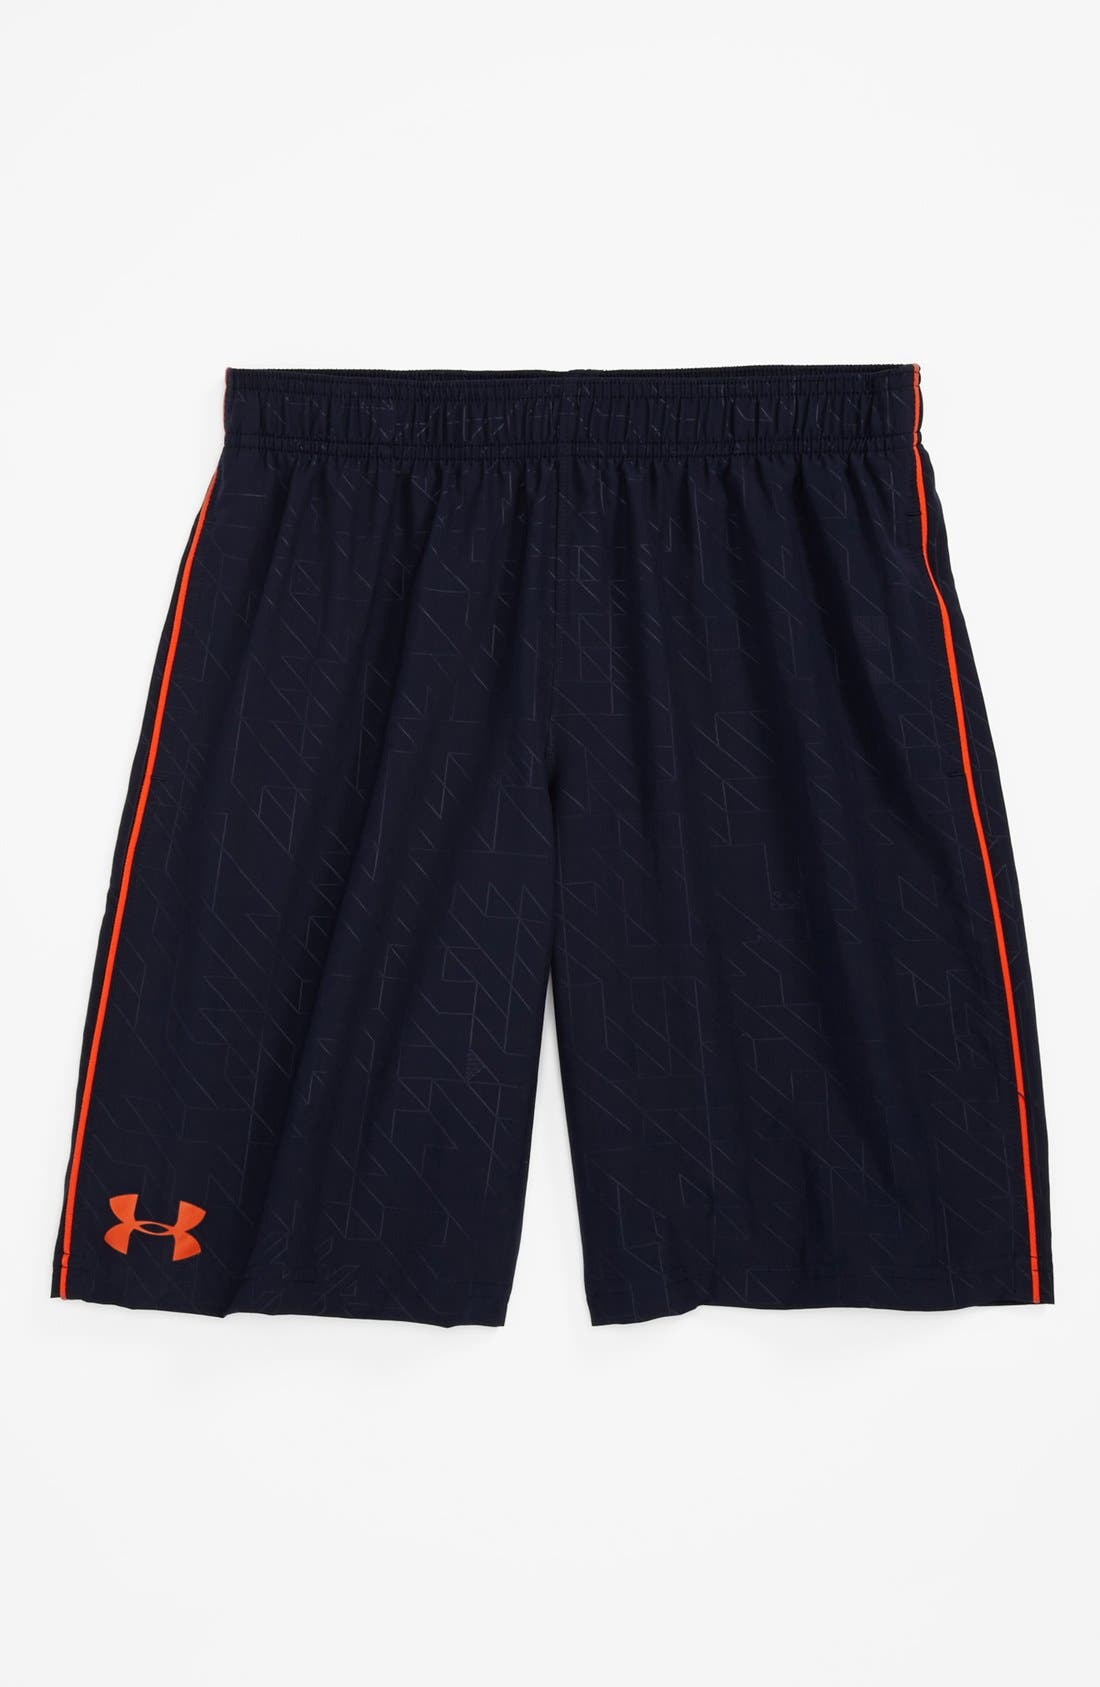 Alternate Image 1 Selected - Under Armour 'Ultimate' HeatGear® Shorts (Big Boys)